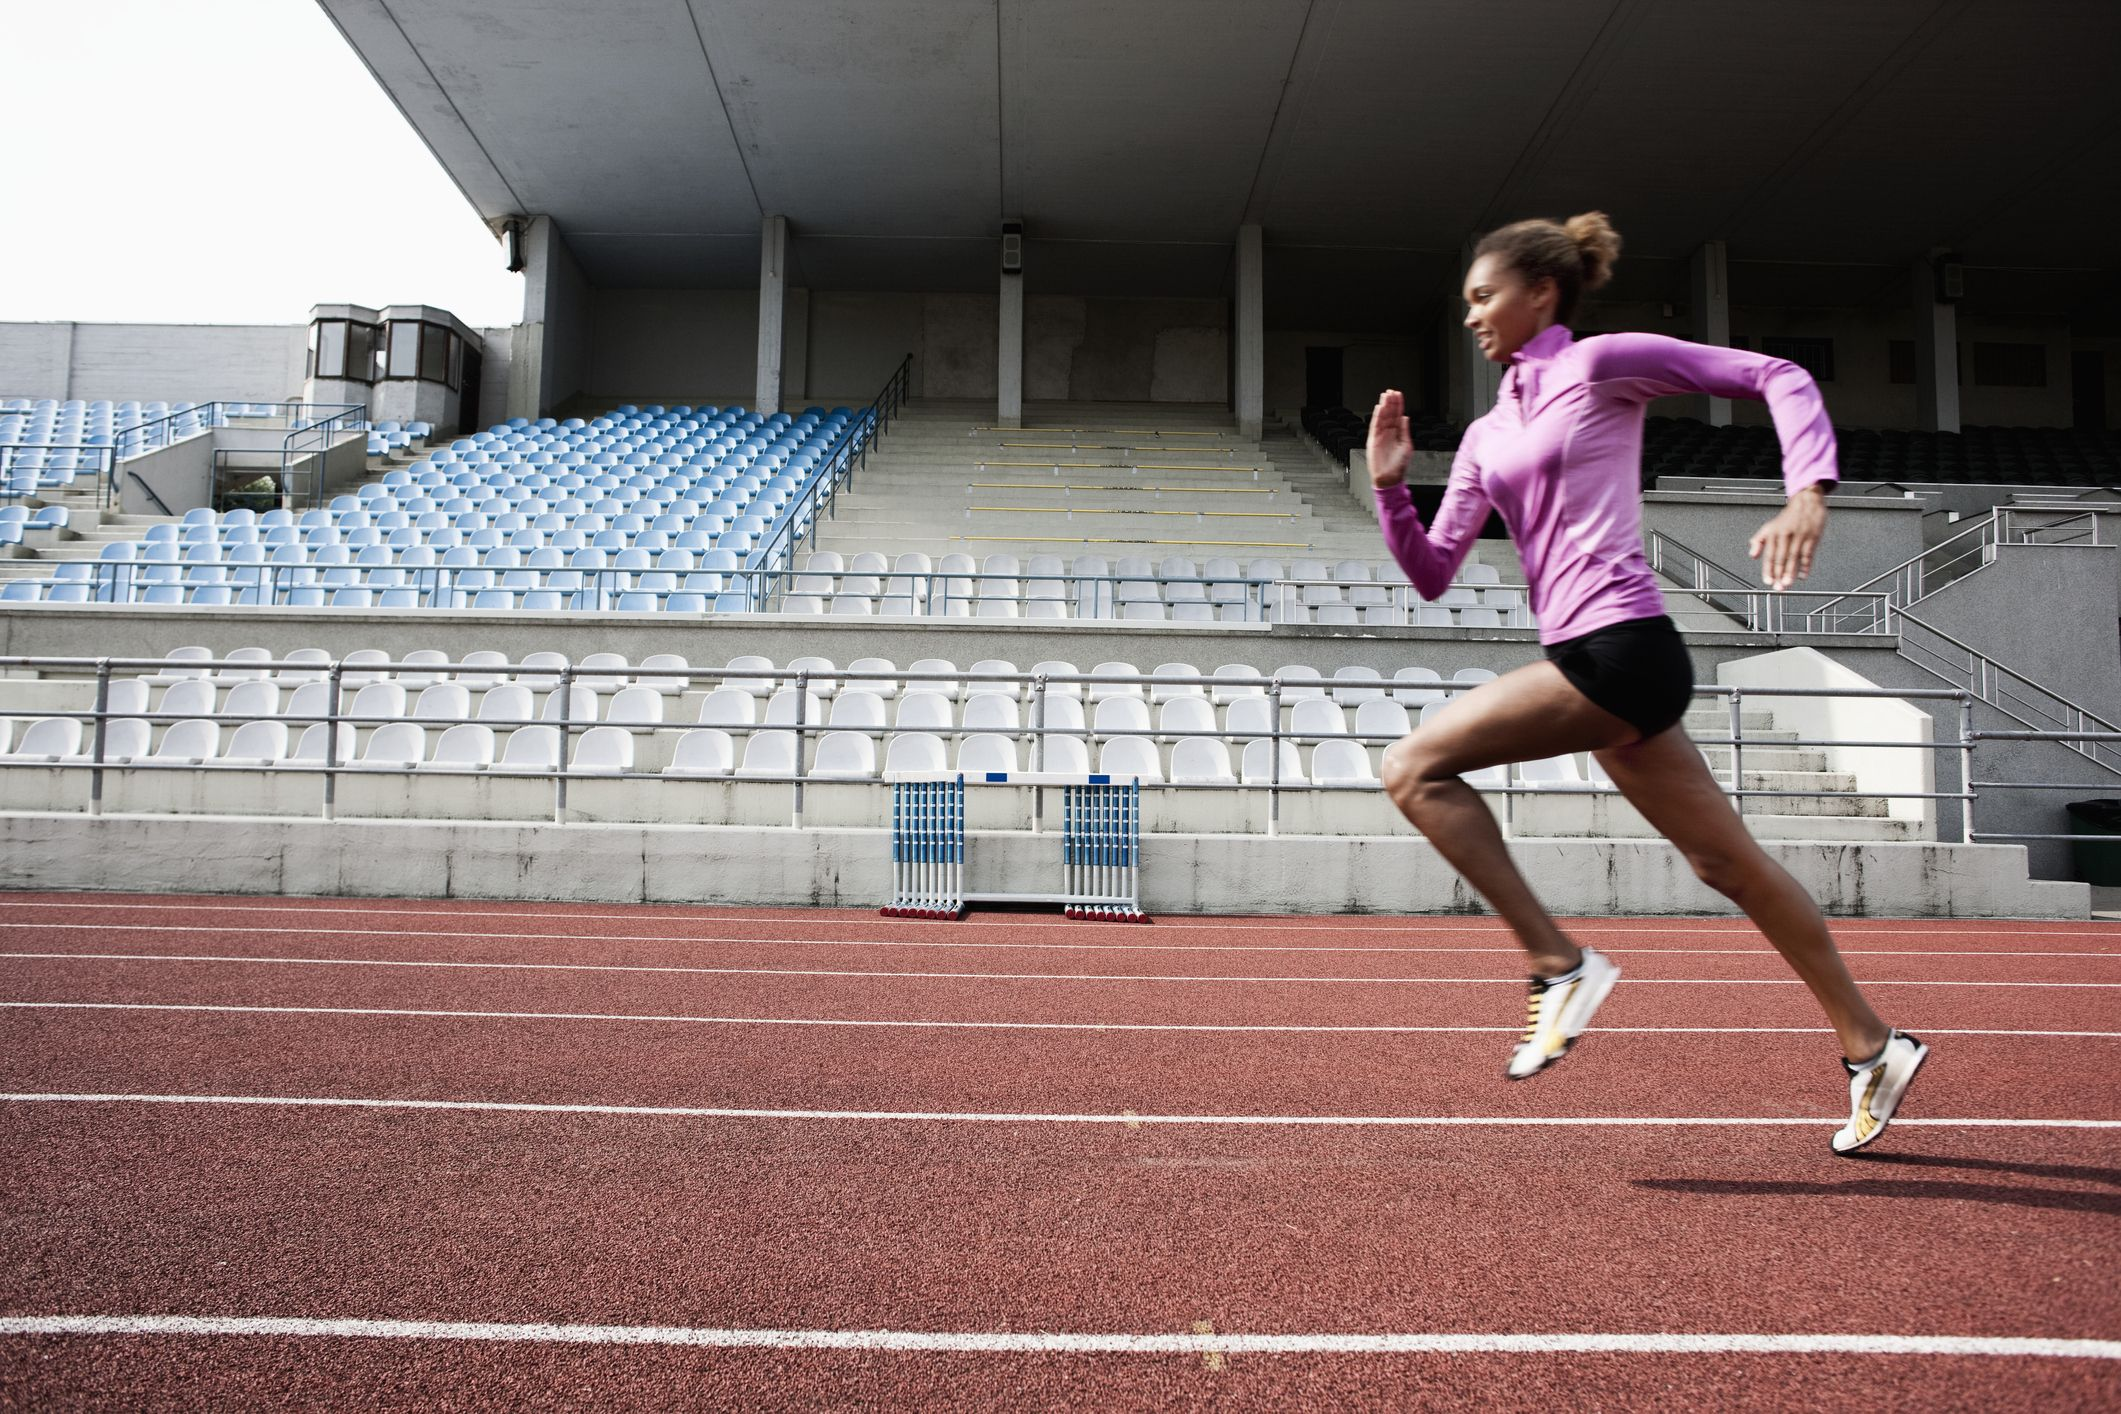 Want to Boost Your Speed? Here's How to Sprint Faster